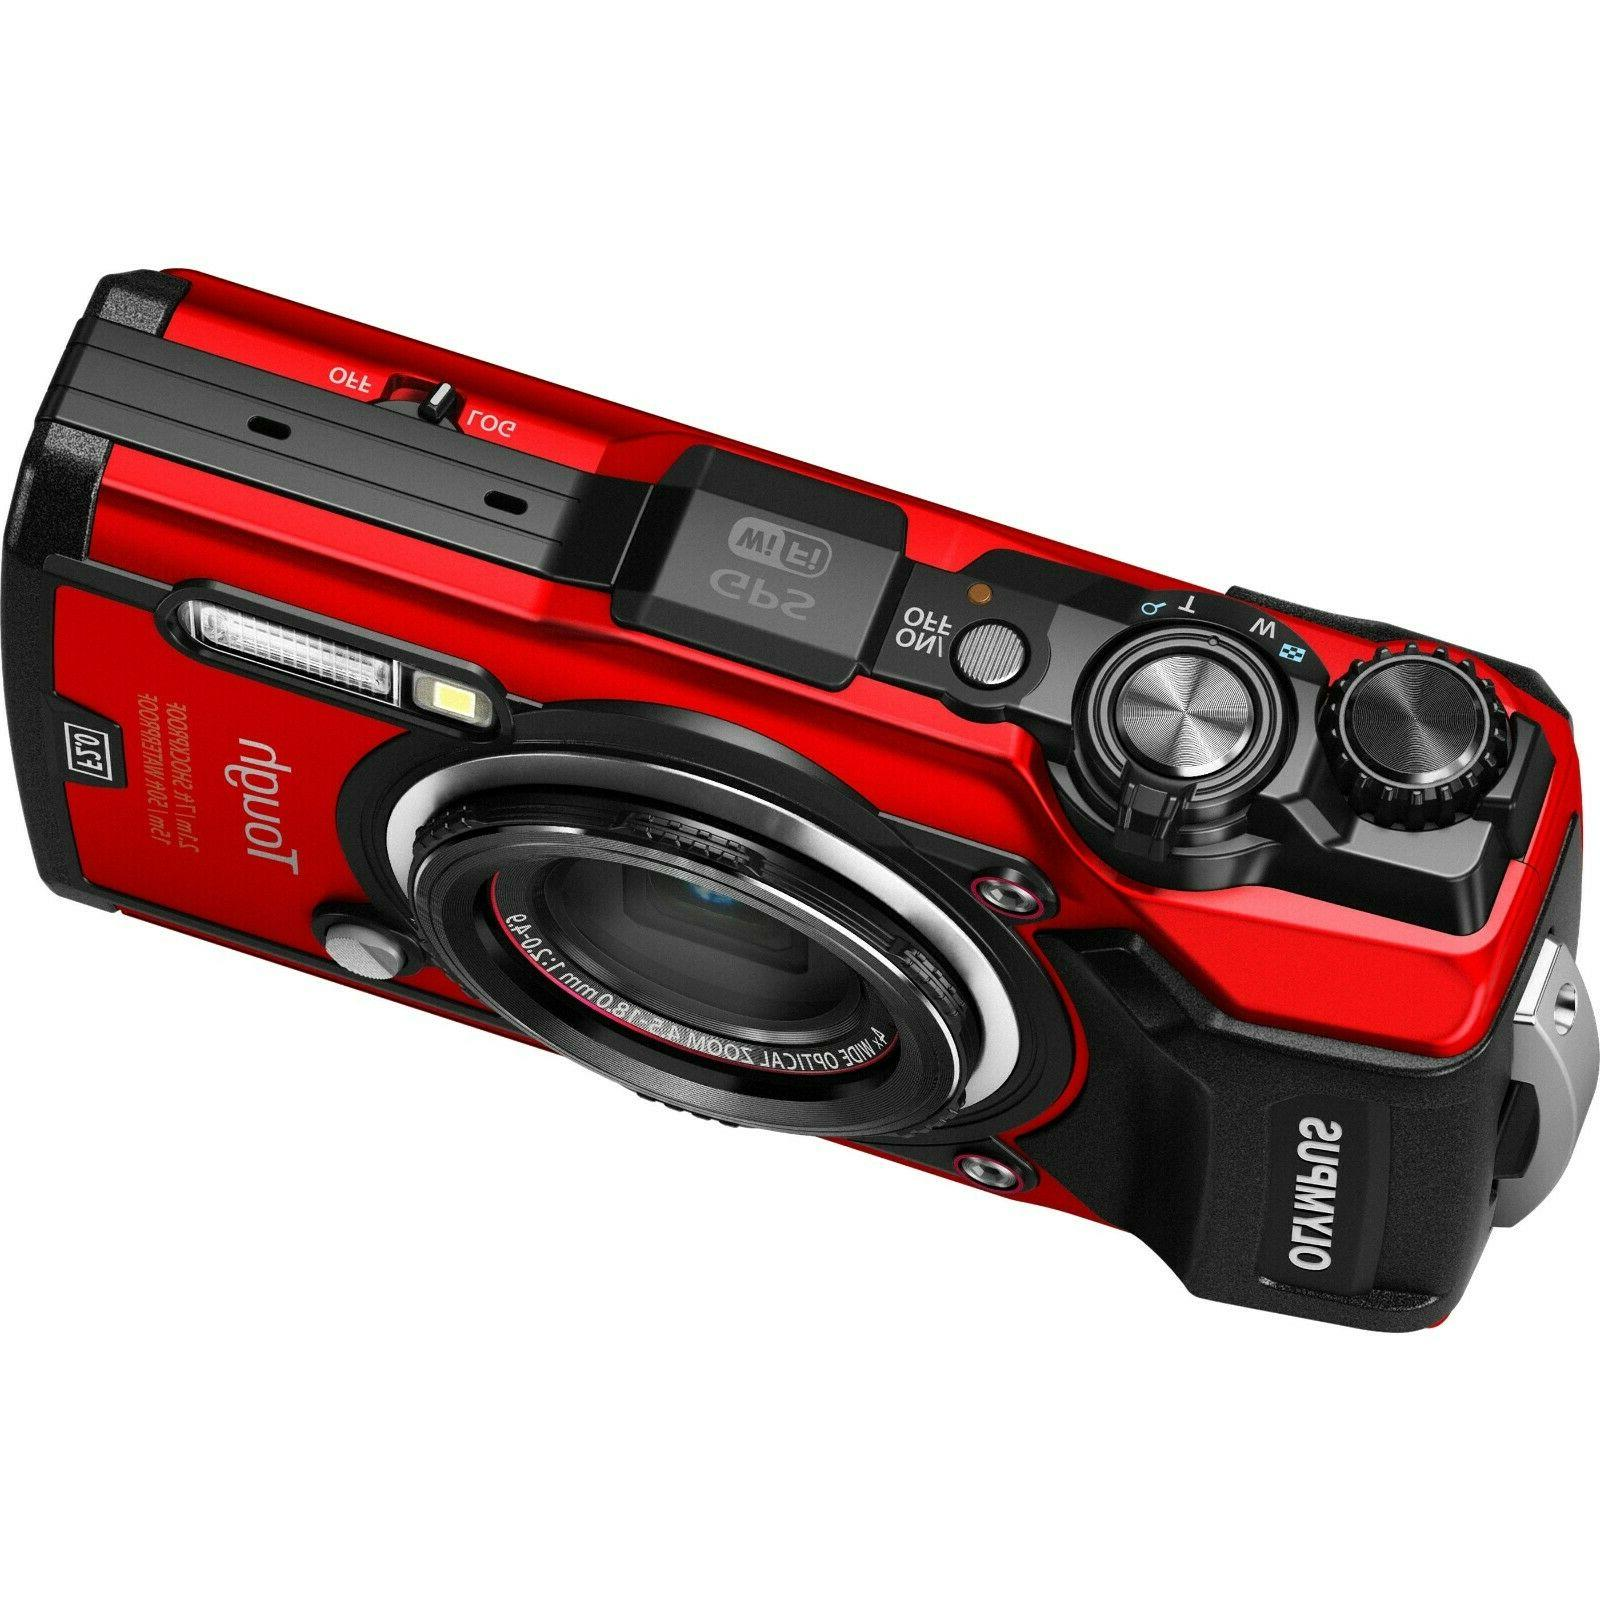 tough tg 5 digital compact camera red